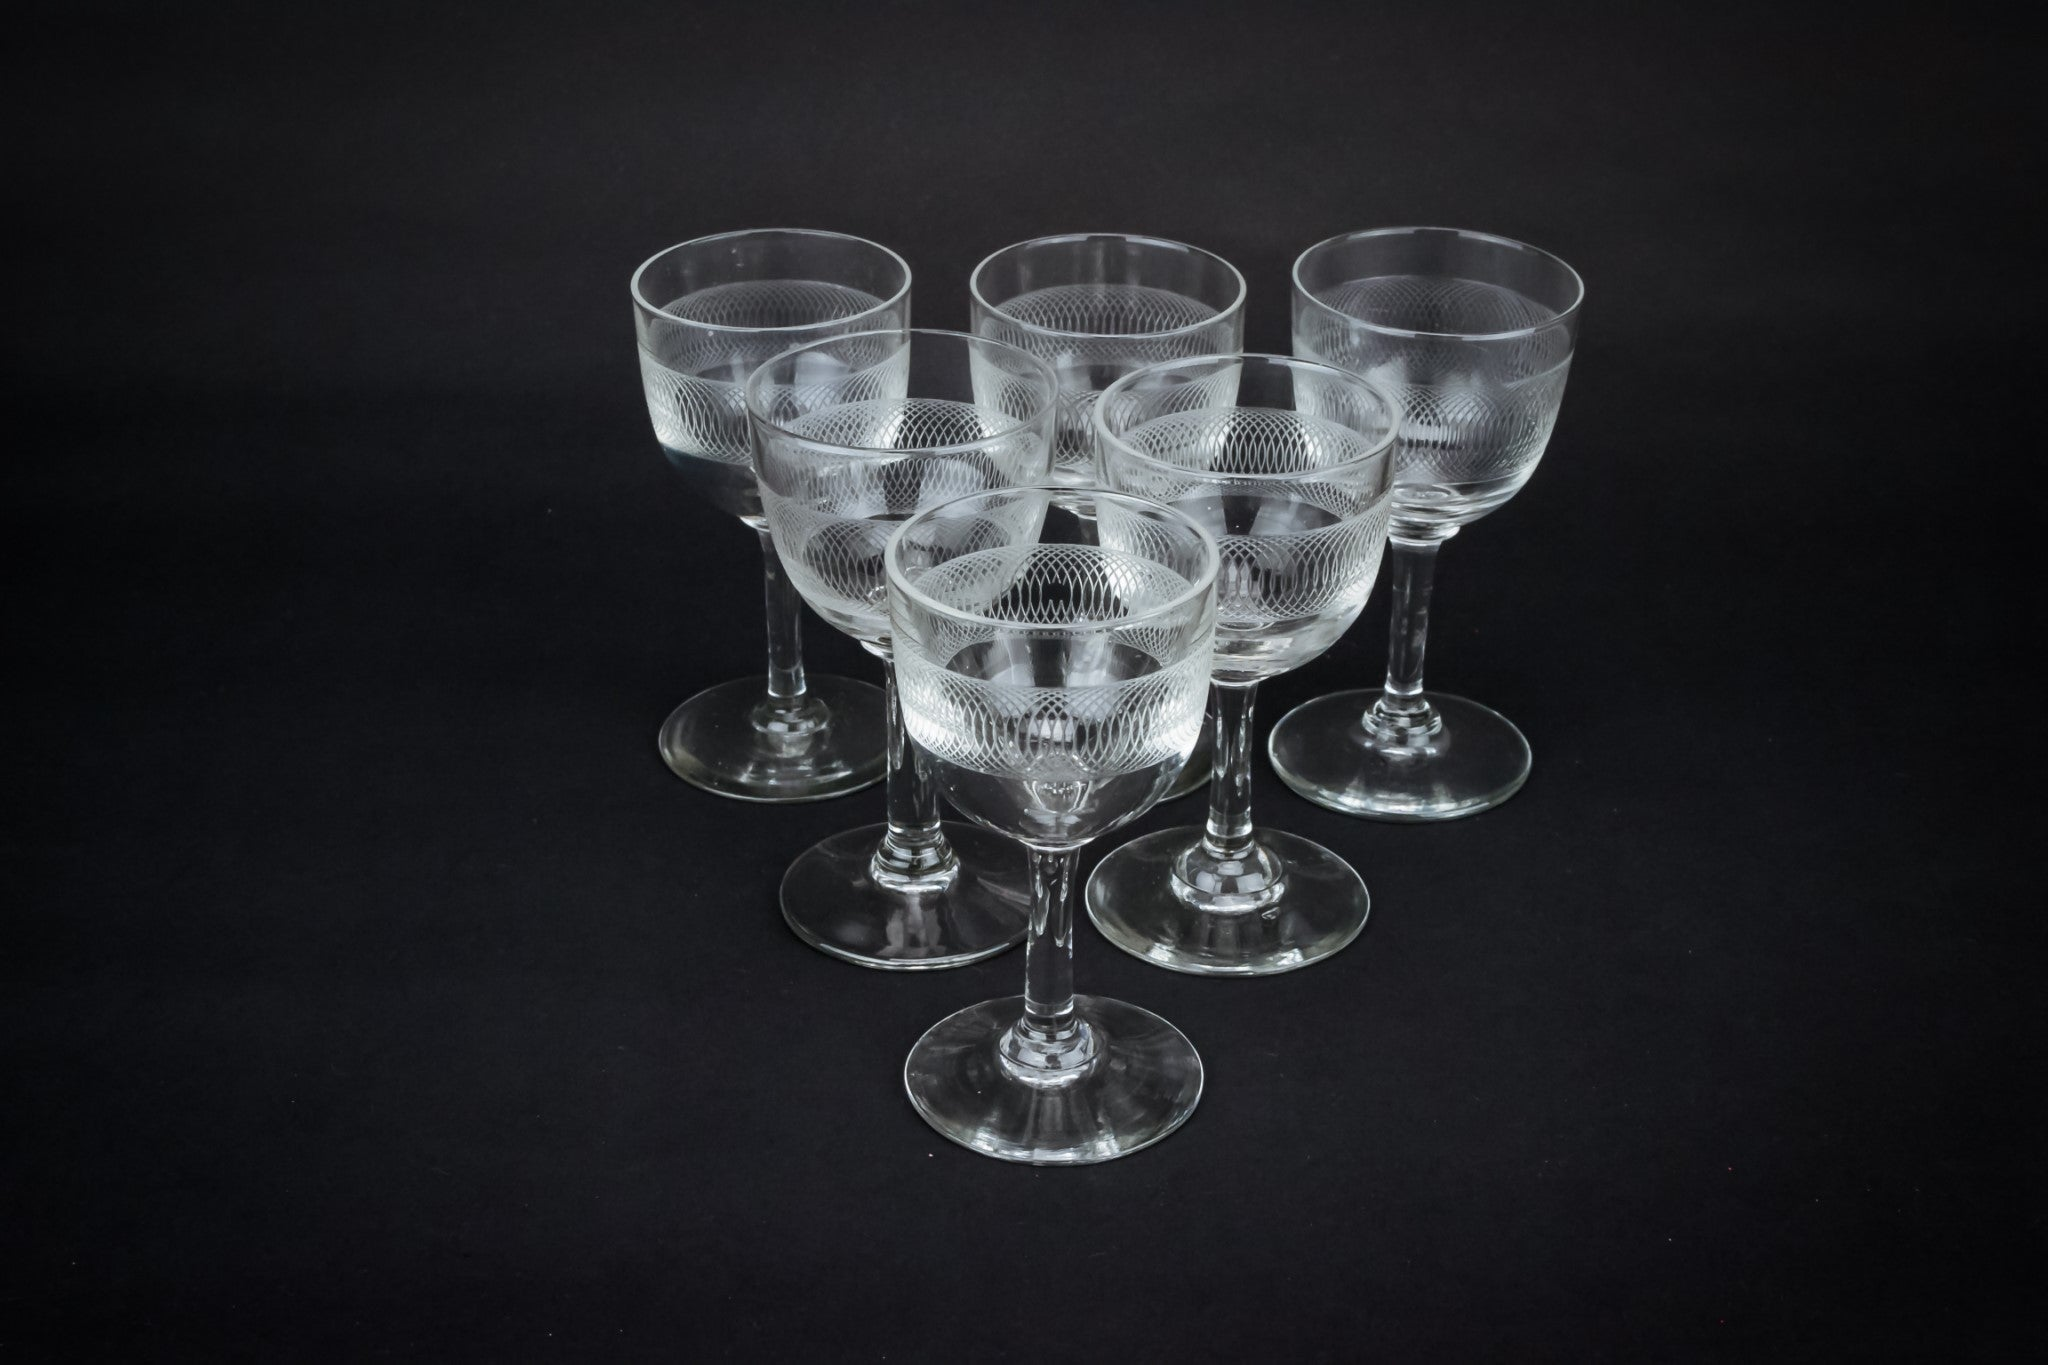 6 engraved sherry glasses